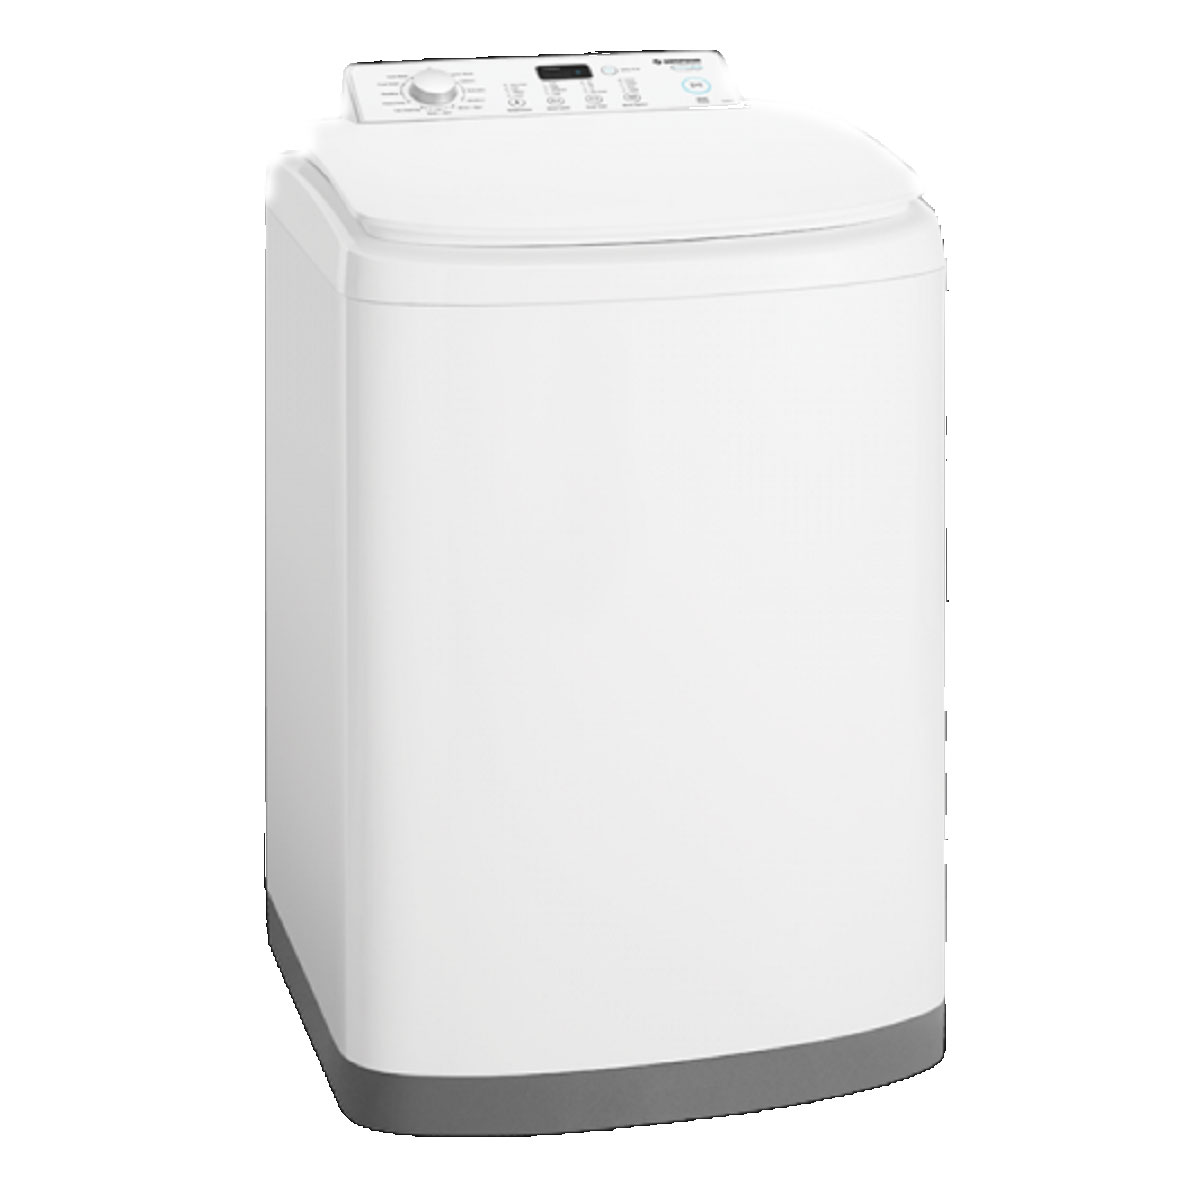 Simpson SWT6541 6.5kg EZI Top Load Washing Machine